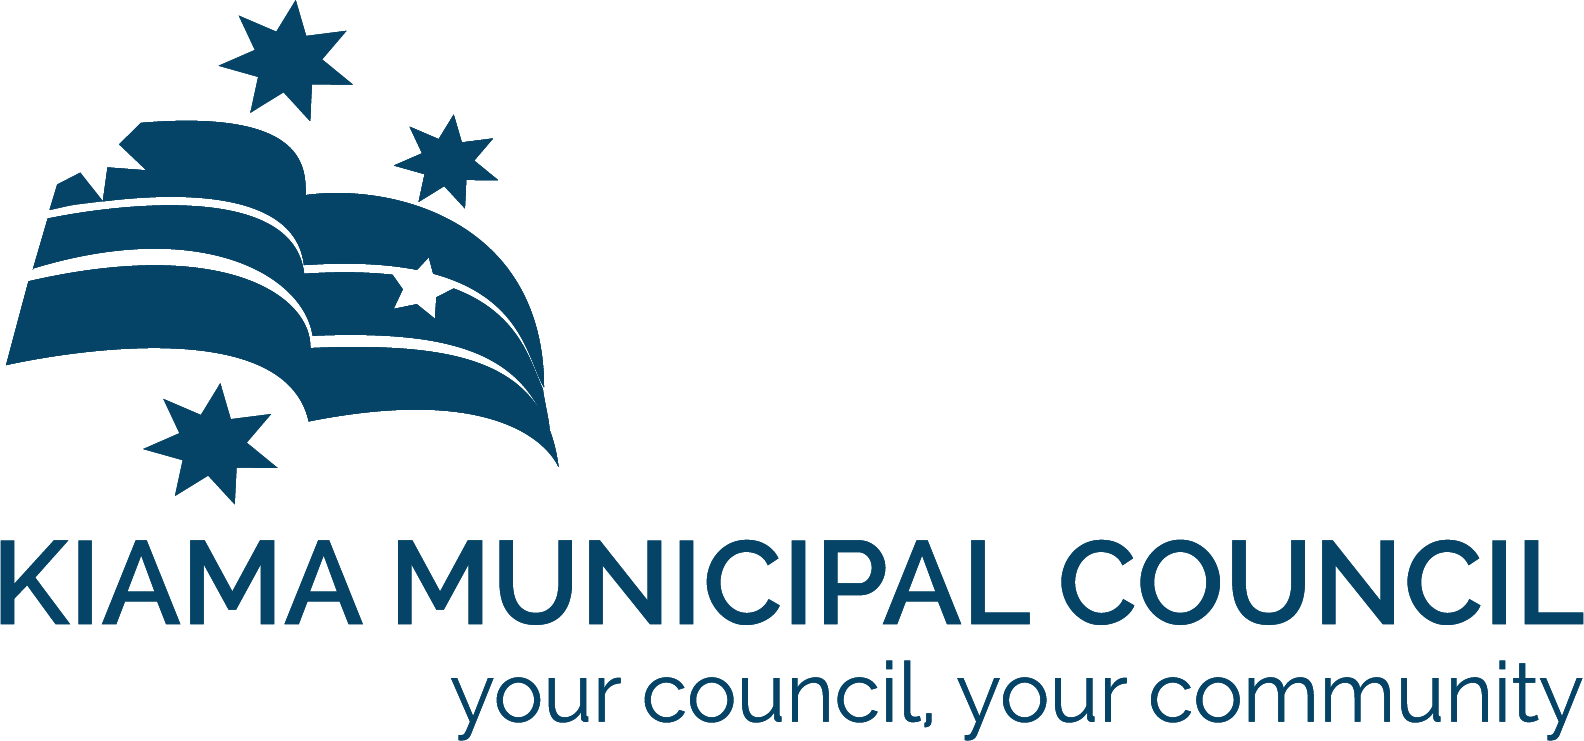 Logo of The Council of the Municipality of Kiama